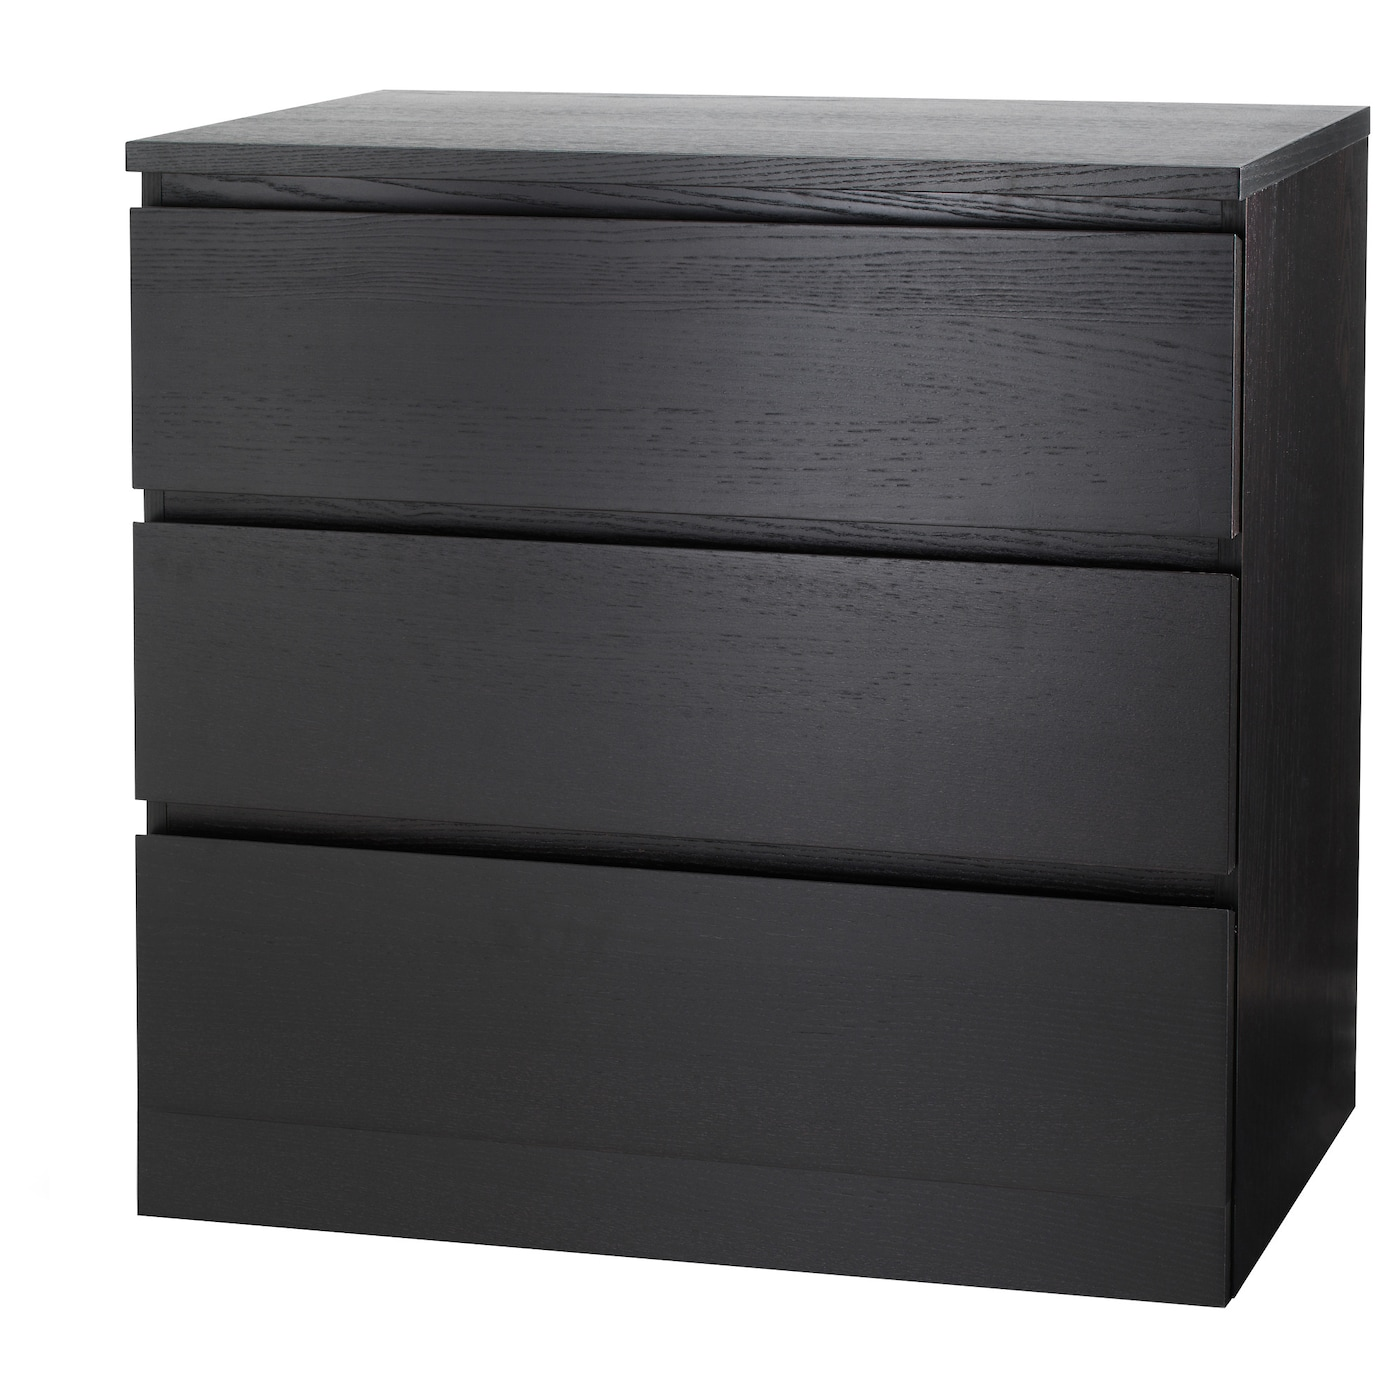 Malm Chest Of 3 Drawers Brown Stained Ash Veneer